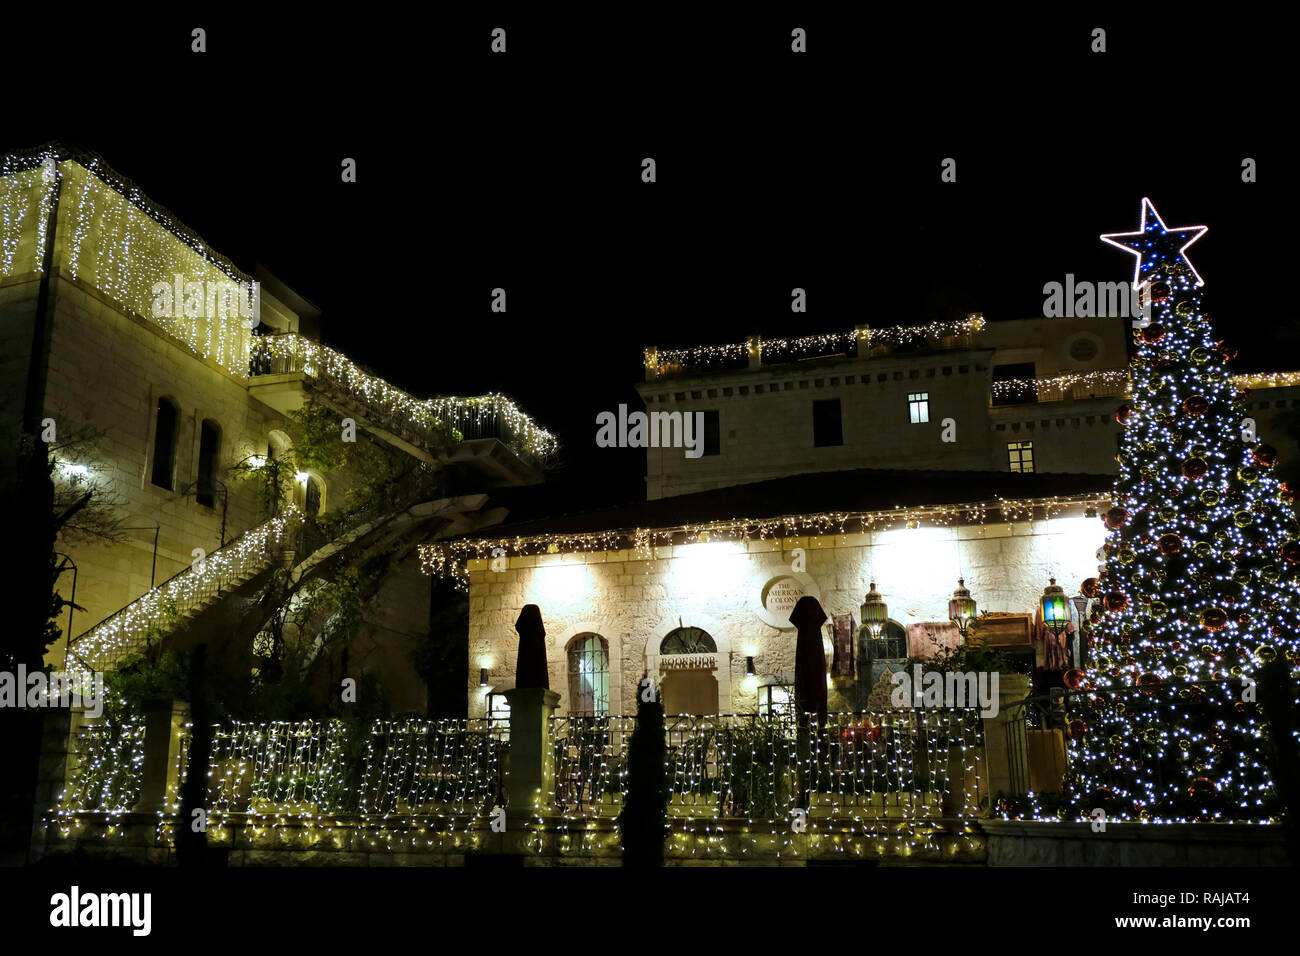 Christmas decorations of the American Colony Hotel complex located in a historic building which previously housed the utopian American-Swedish community known as the American Colony in East Jerusalem Israel - Stock Image